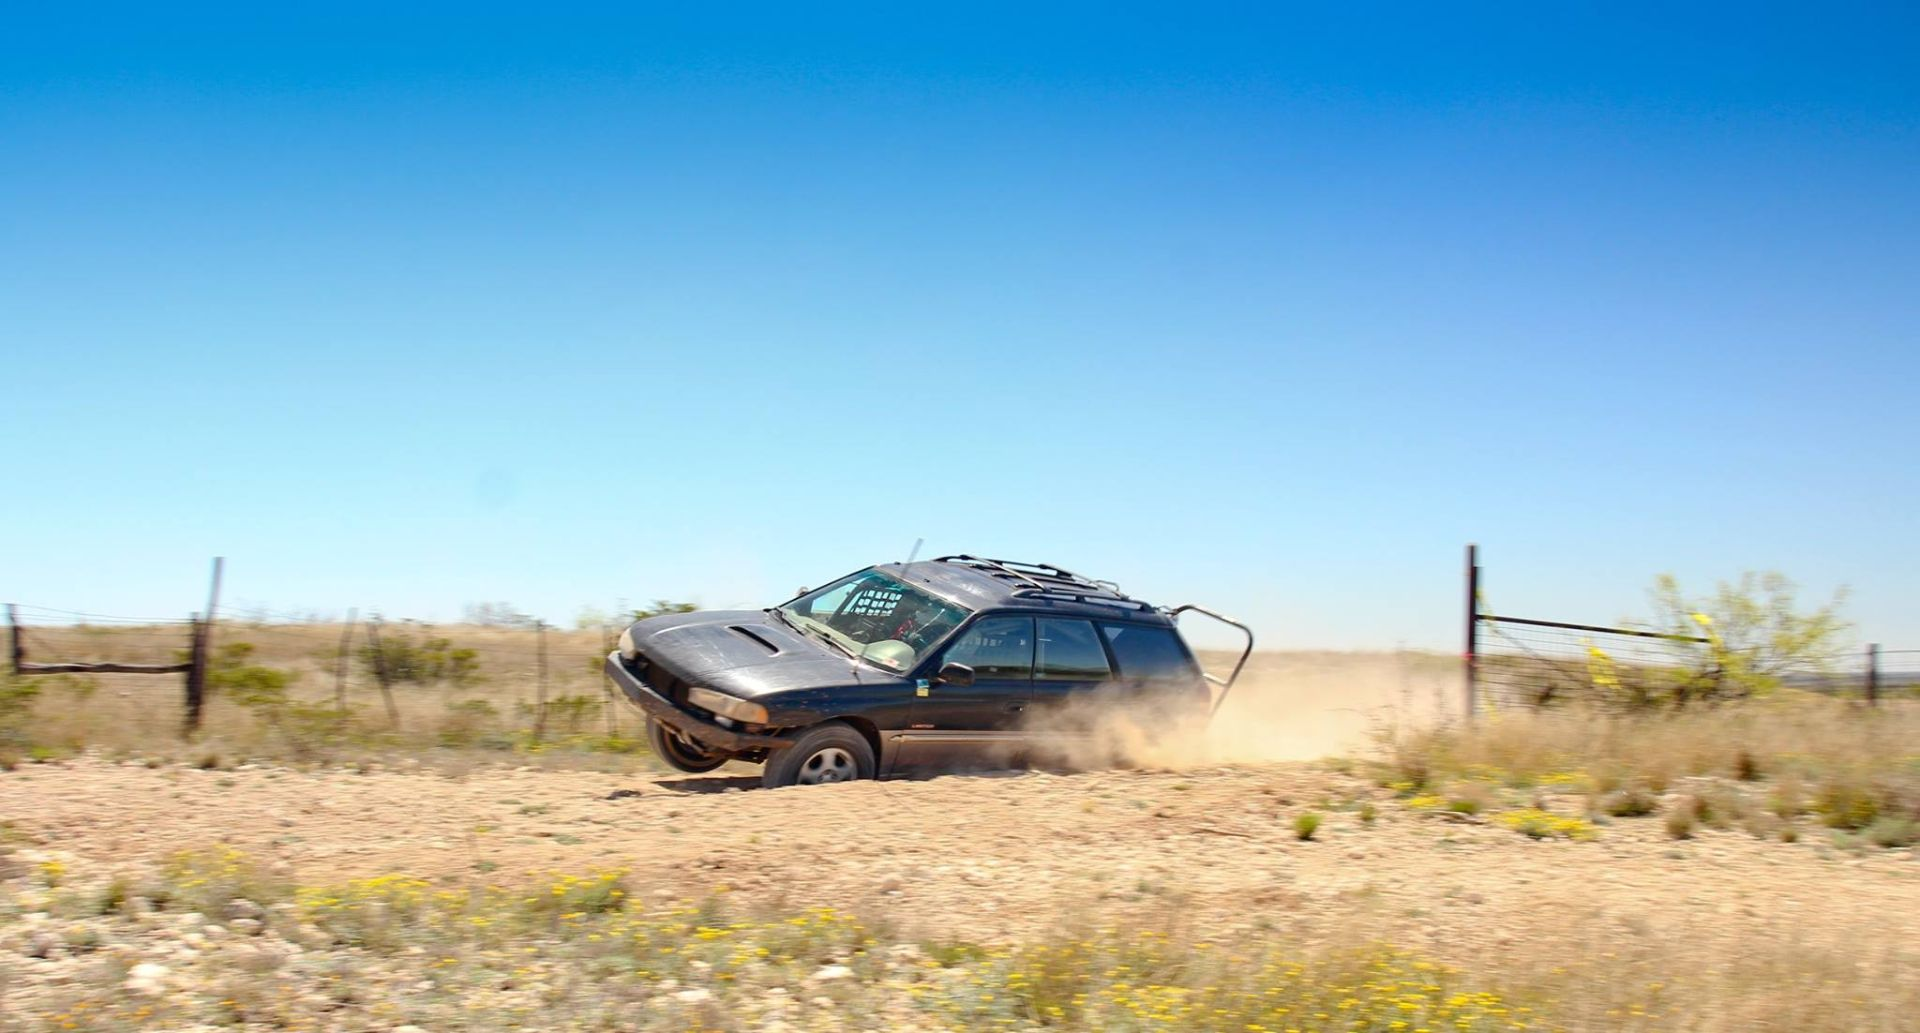 subaru outback 1999 rally best in the desert 500 vegas to reno2